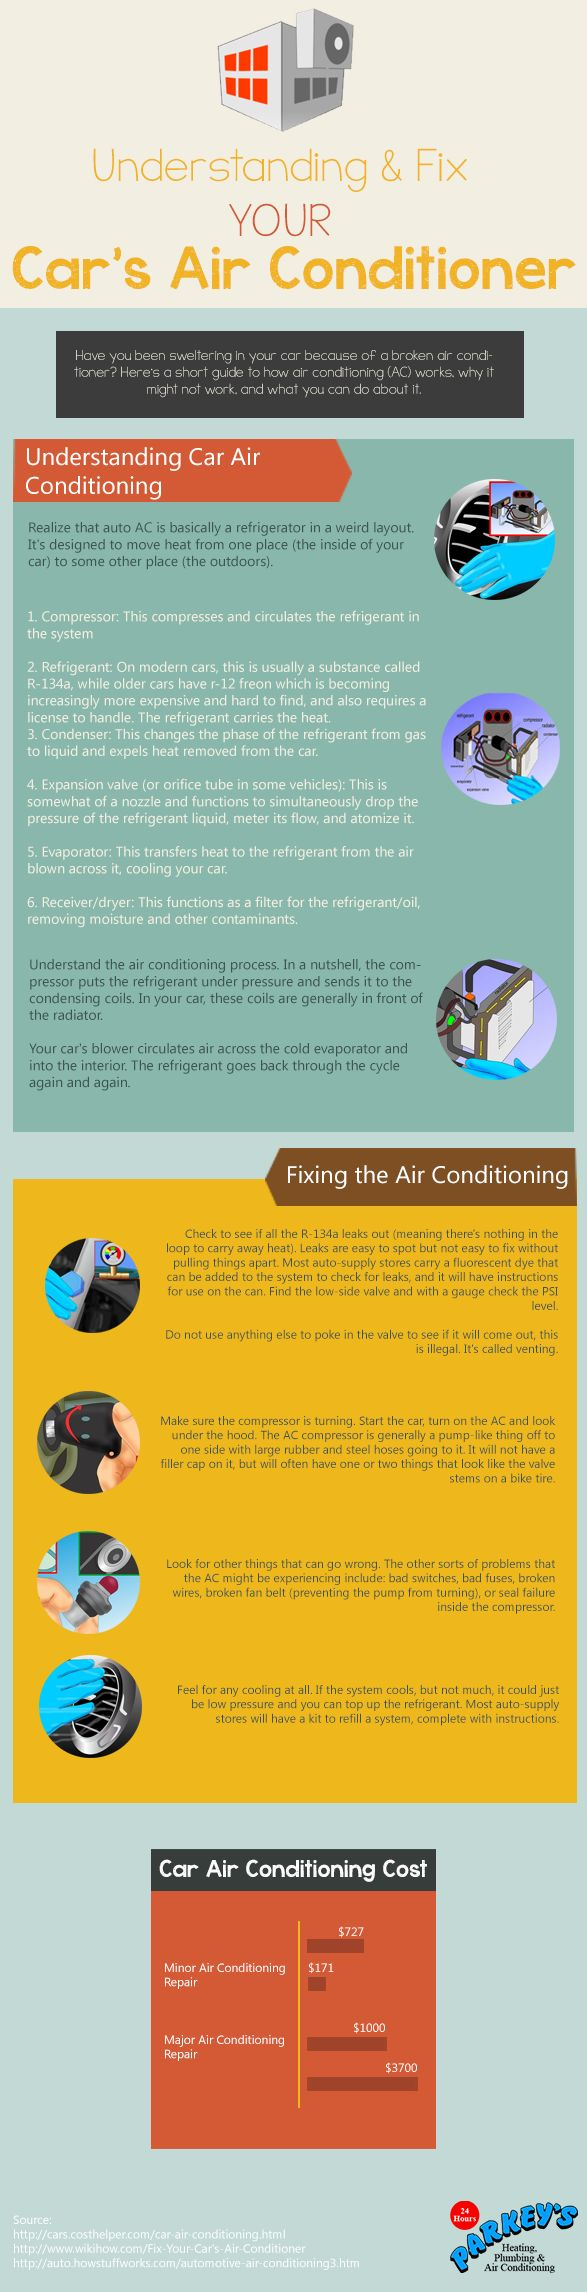 how to tell if your car ac is broken